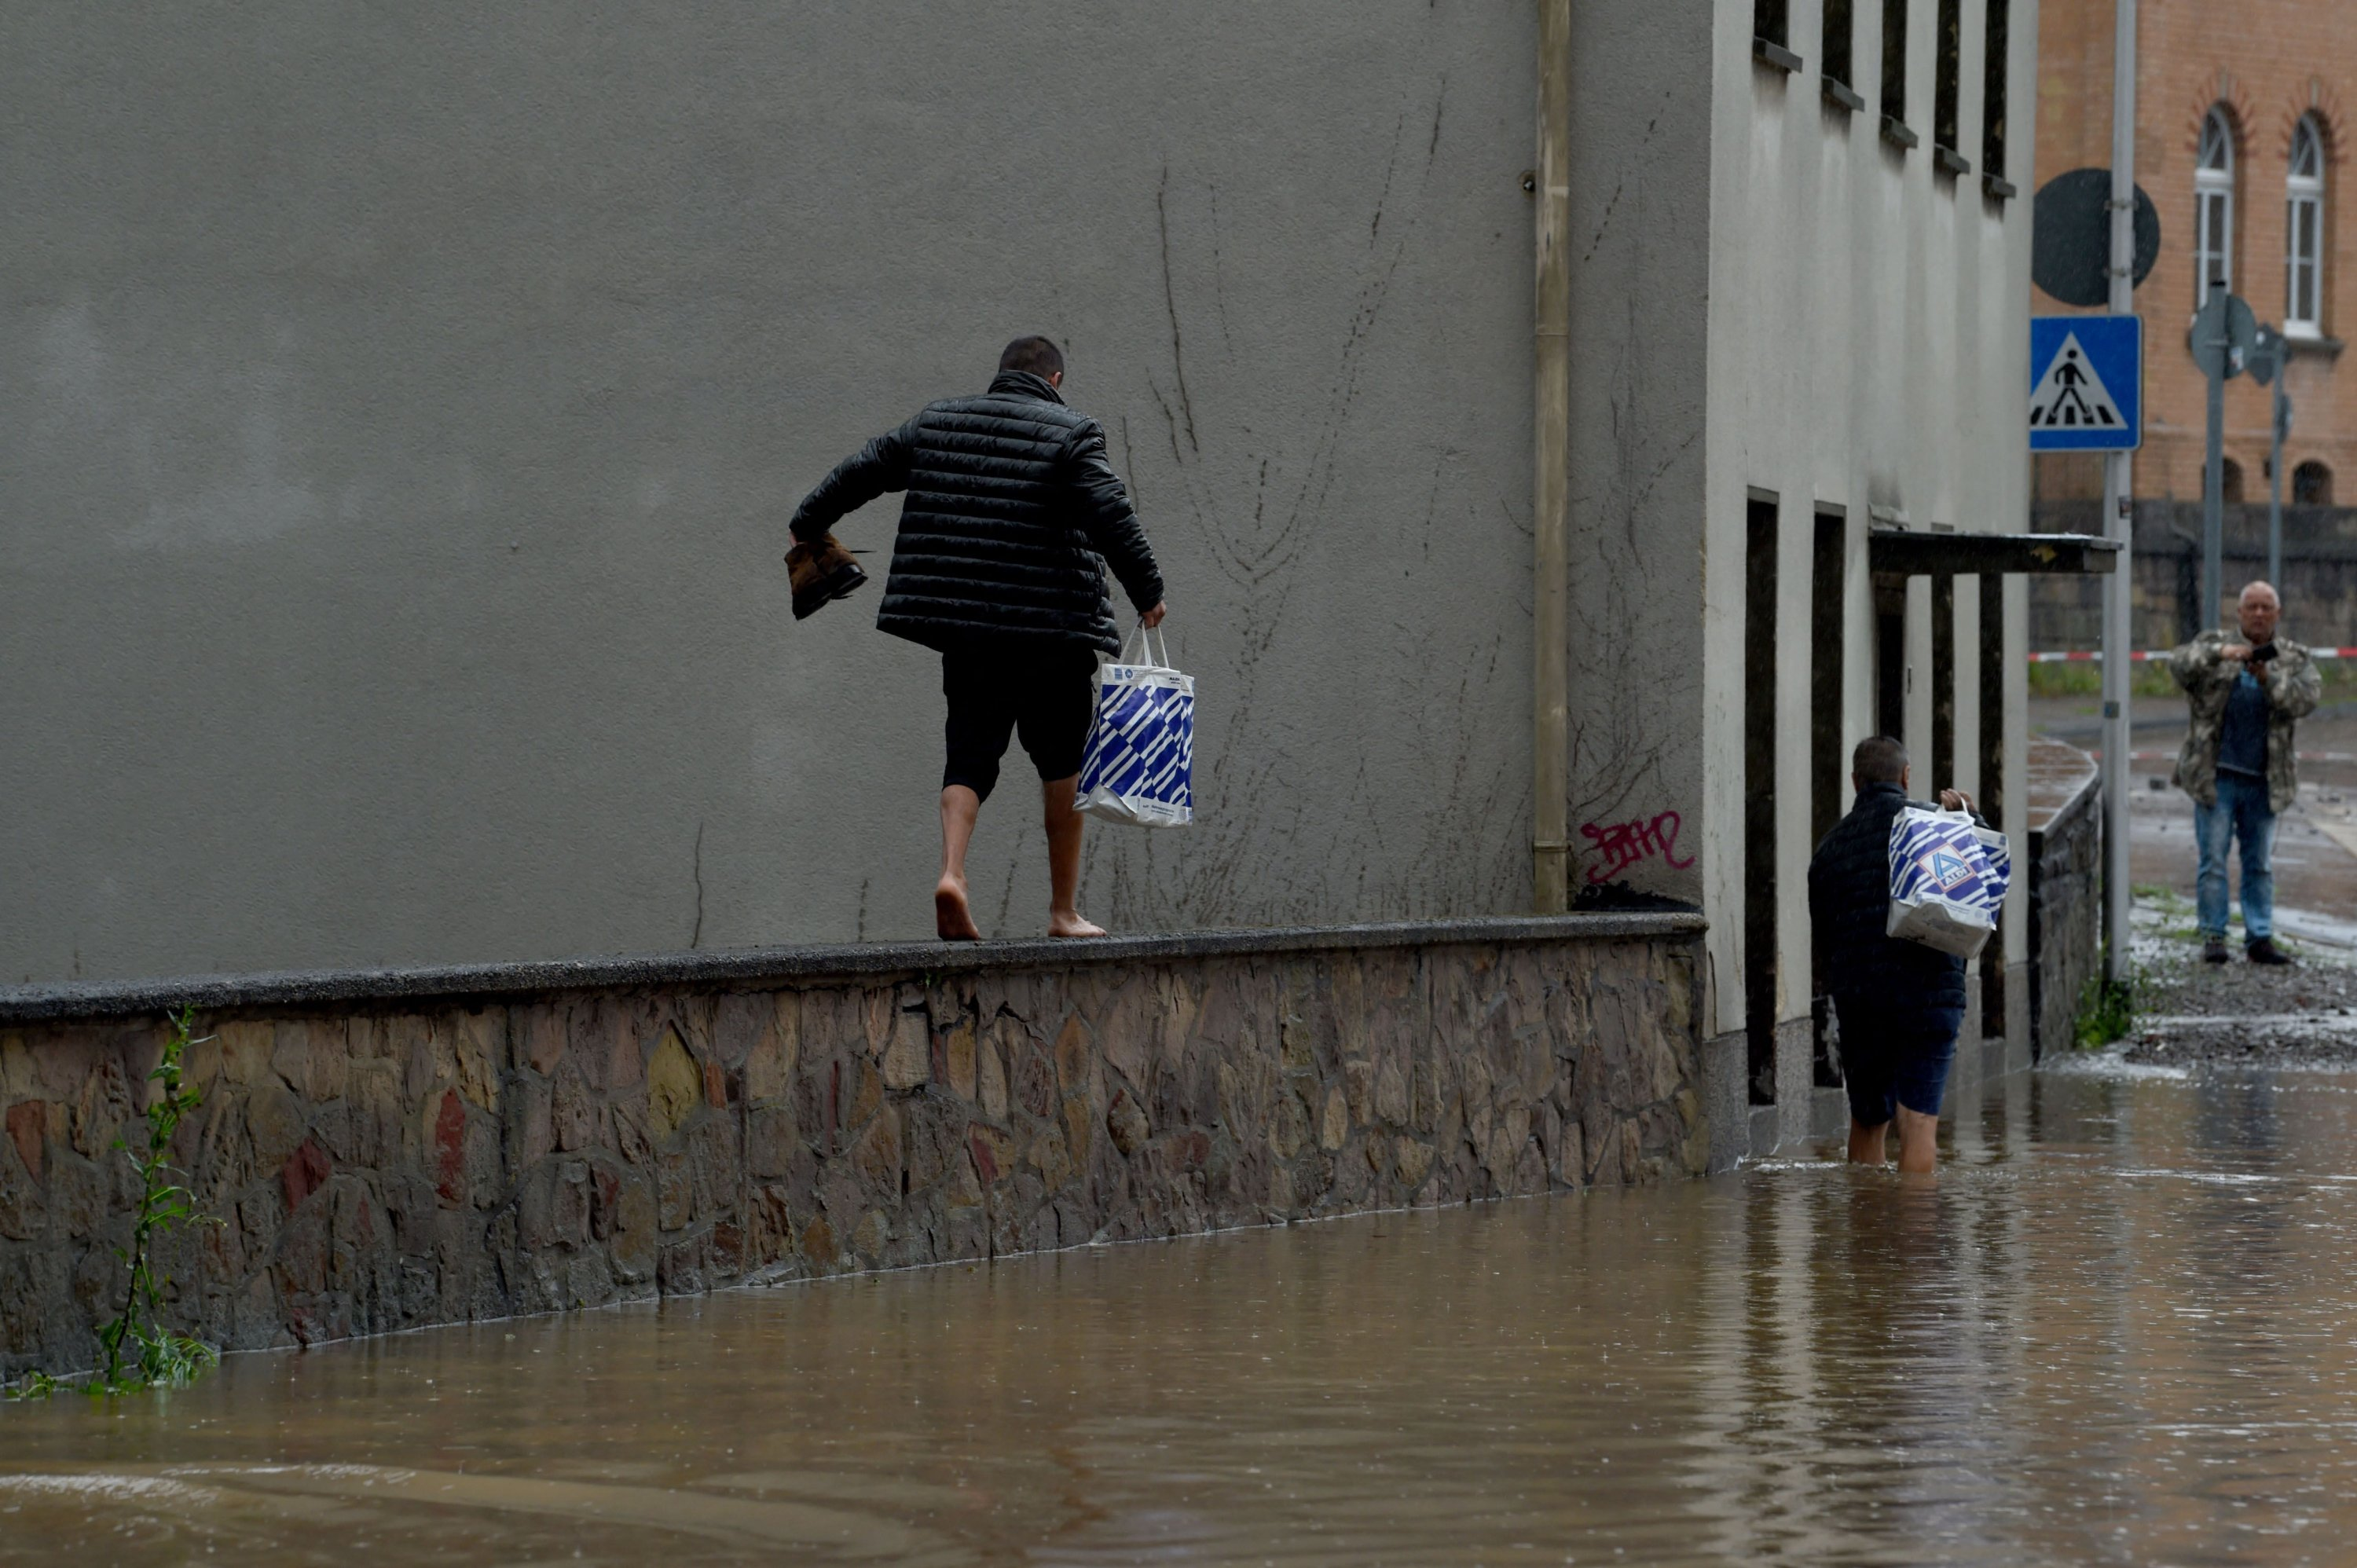 People carry bags through a flooded street in Hagen, western Germany, July 14, 2021, after heavy rain hit parts of the country, causing widespread flooding. (AFP Photo)